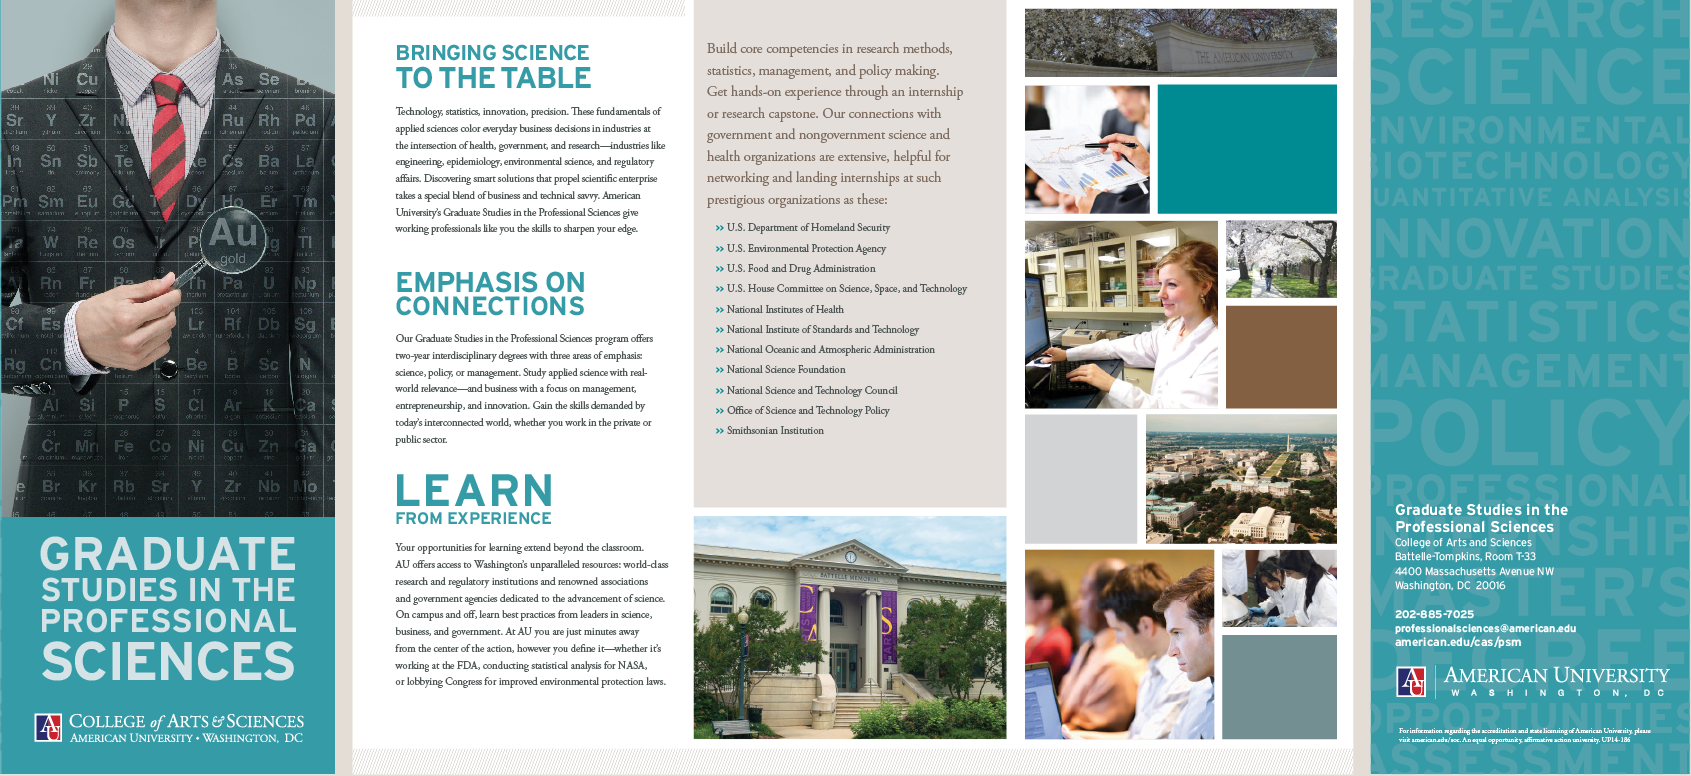 cover and 4 interior panels of the CAS graduate studies in the professional sciences brochure